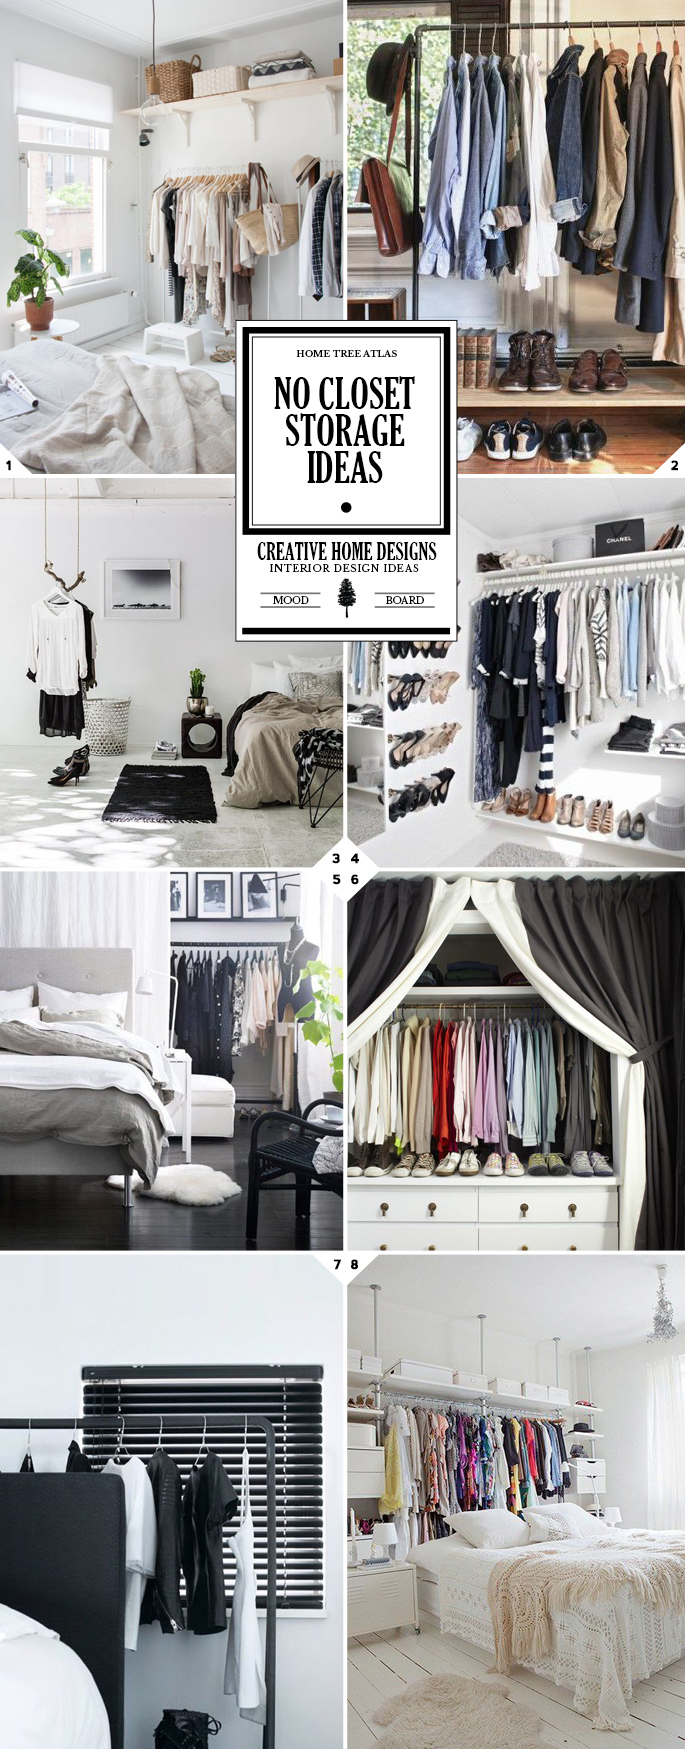 | Boy & girl rooms: make them work together